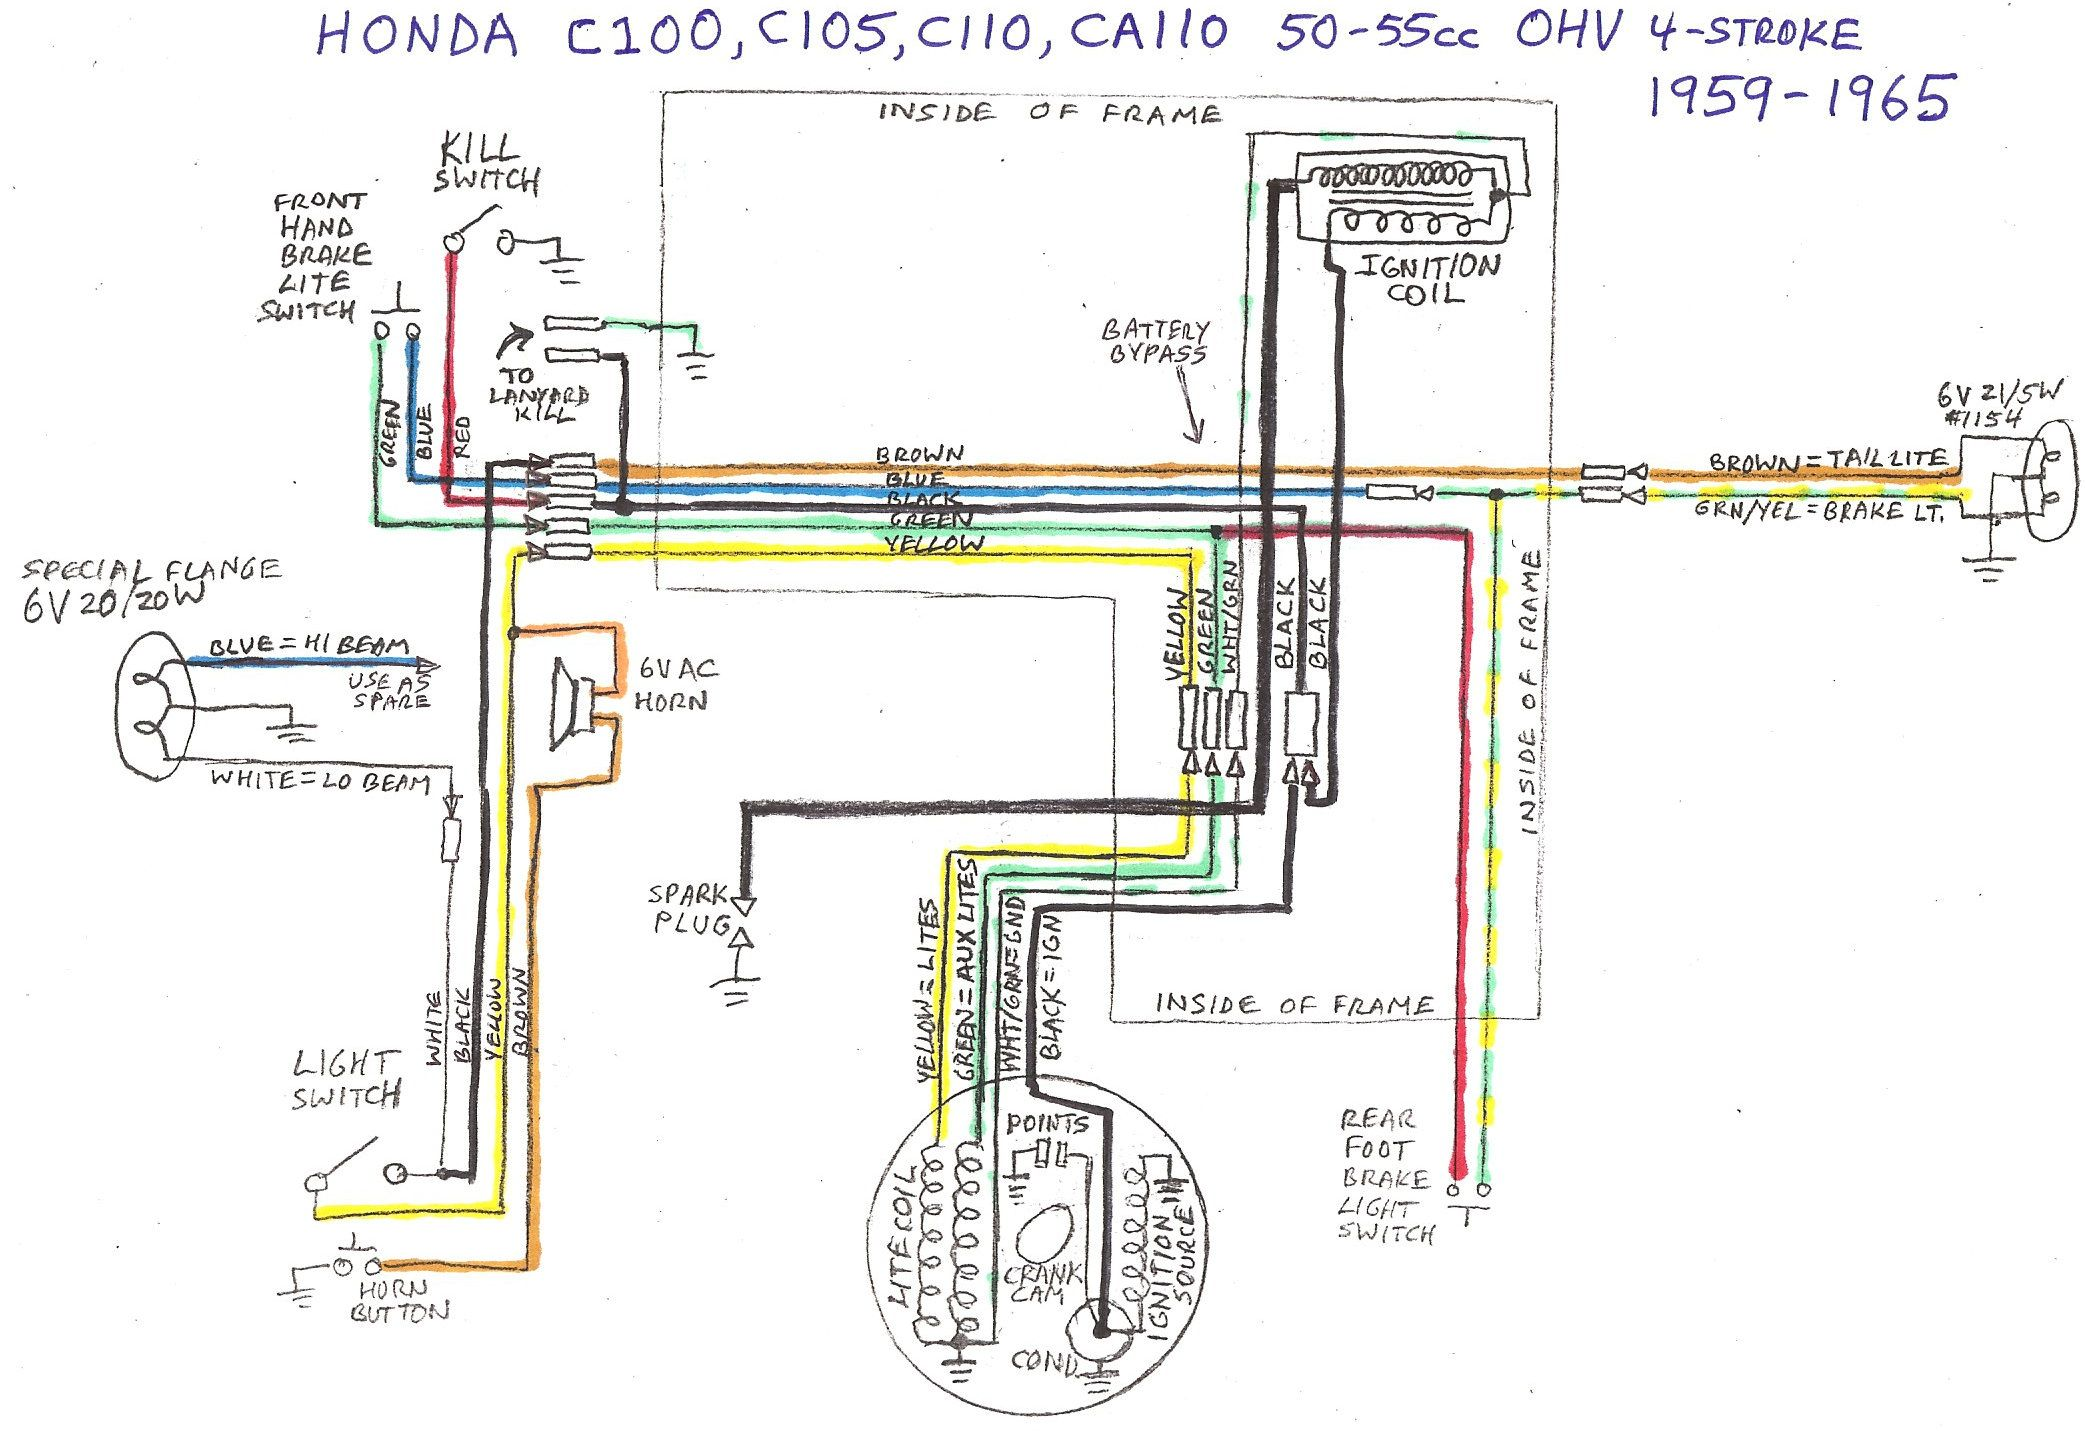 medium resolution of honda 70cc wiring wiring diagram honda 70cc pit bike honda circuit diagrams wiring diagram center mix